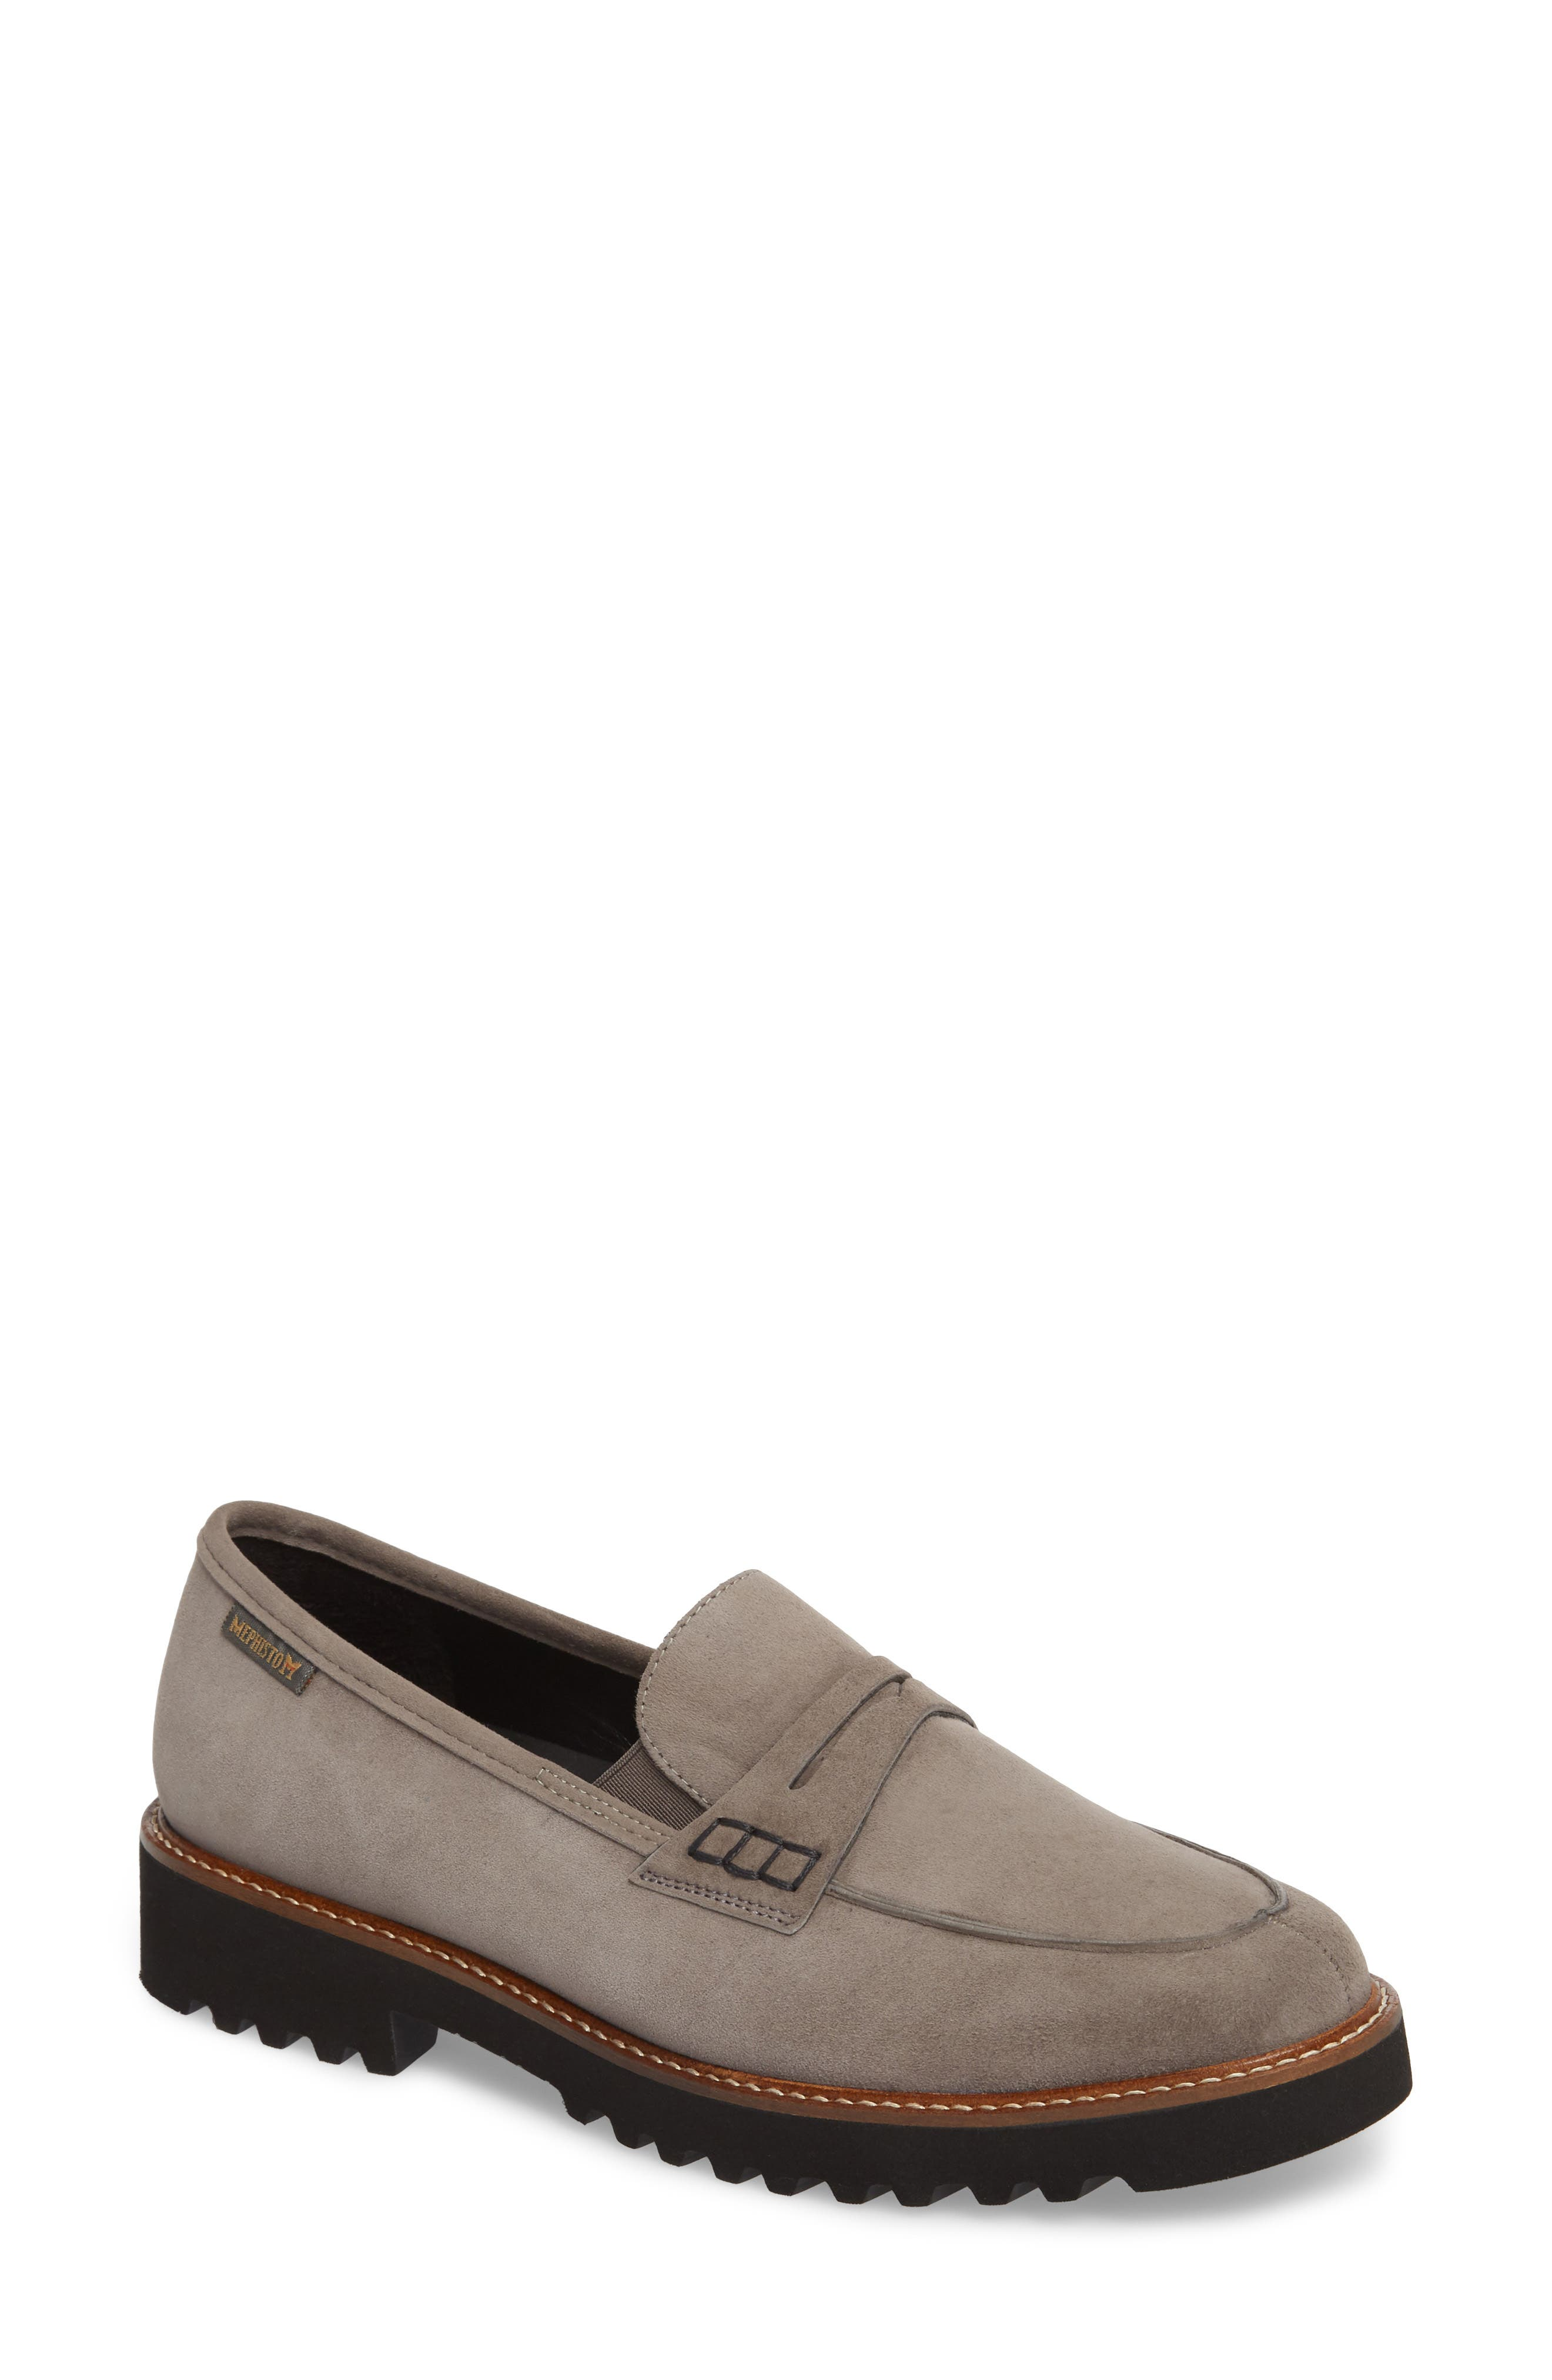 Sidney Penny Loafer,                         Main,                         color, GREY SUEDE